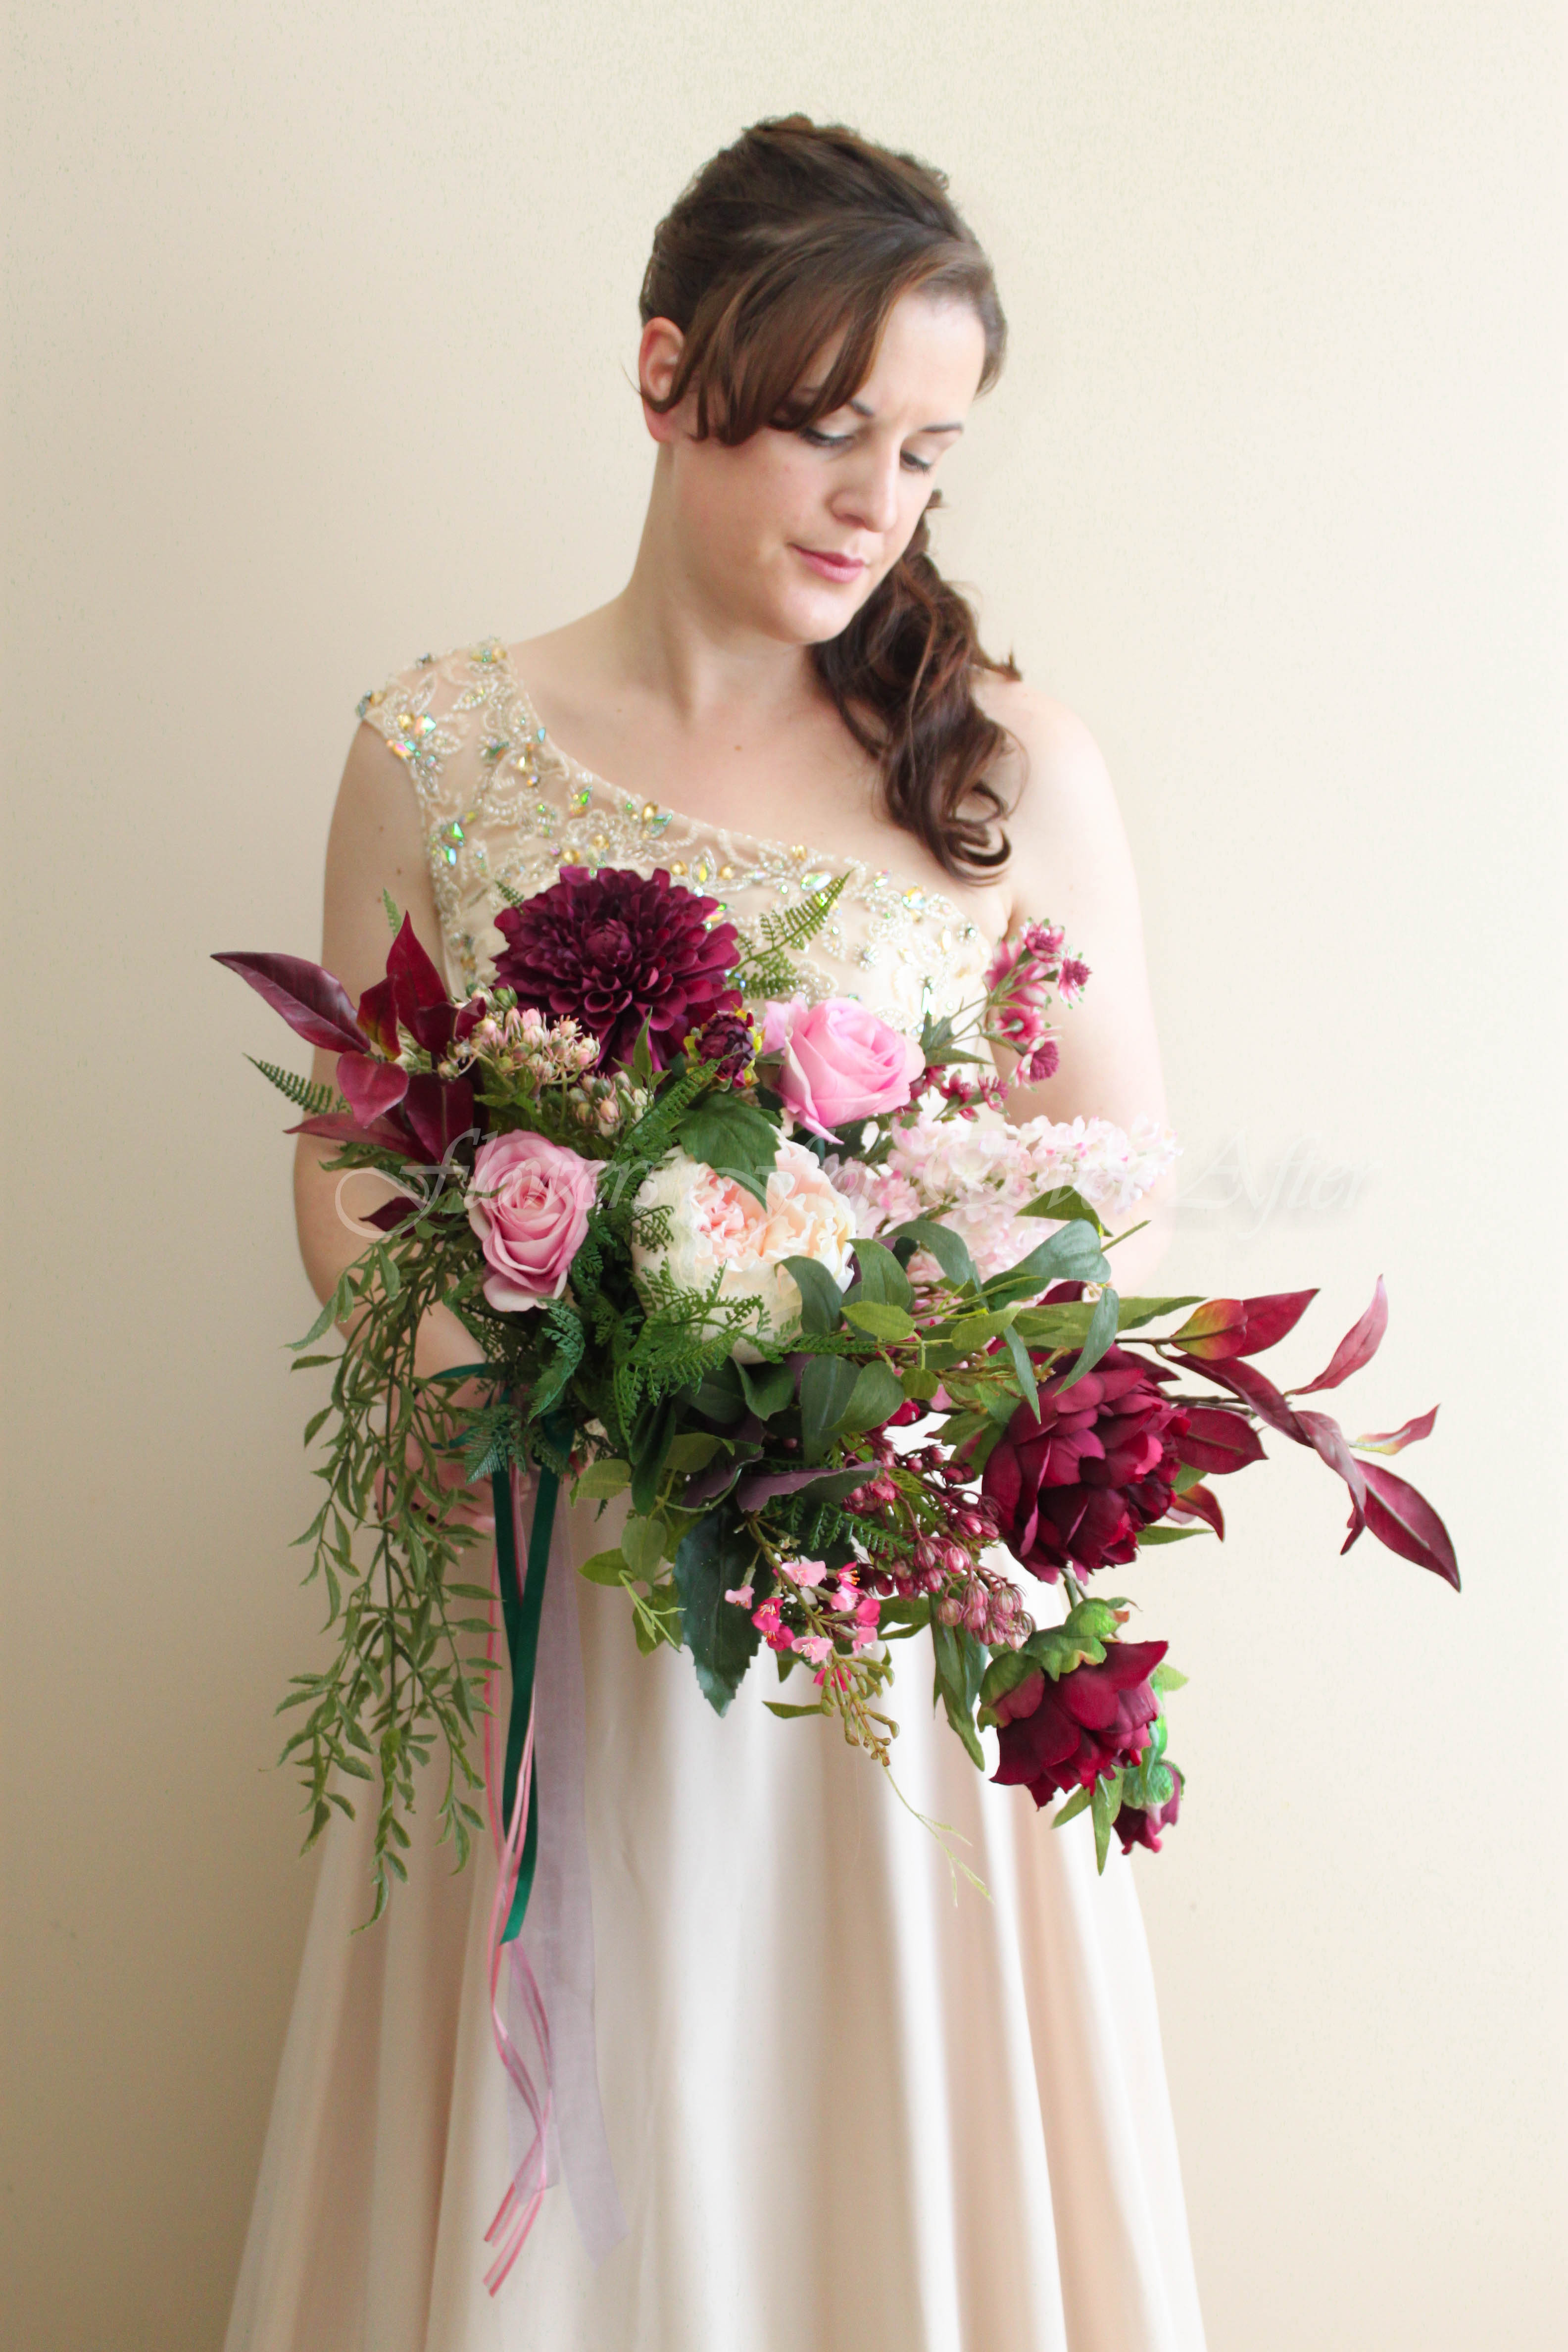 Artificial Silk Bridal Bouquet in large garden picked style. Featuring faux flower peonies, foliage, dahlias, roses and more. Designed exclusively in Melbourne by Australia's best Artificial Wedding Flower Designers Flowers For Ever After. Custom Orders Welcome, Worldwide Shipping Available.